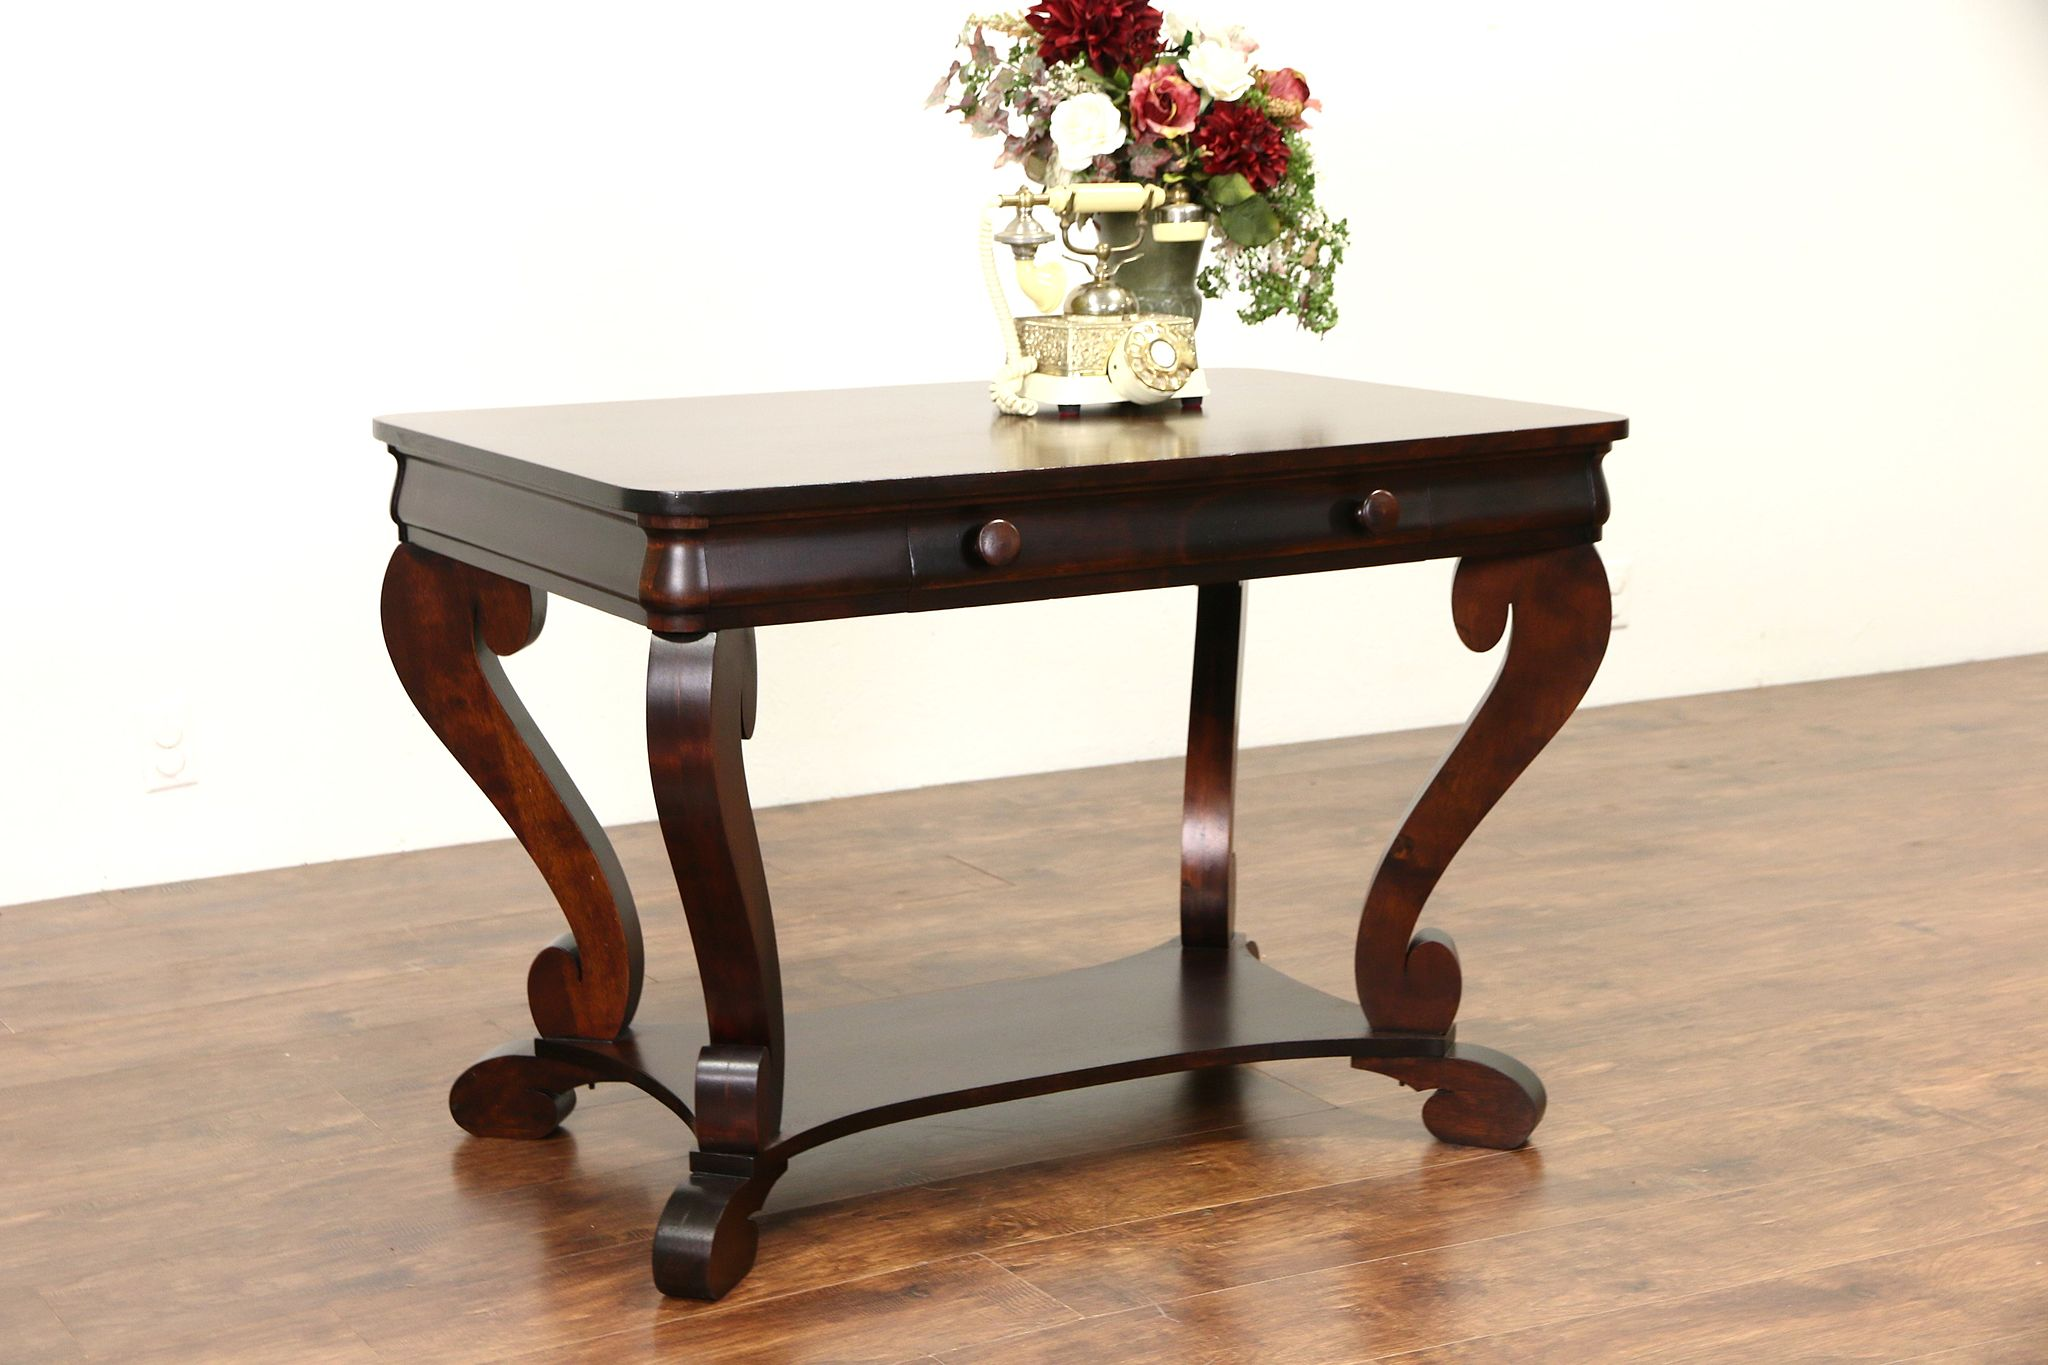 Ordinaire Empire 1915 Antique Mahogany Writing Desk Or Library Table